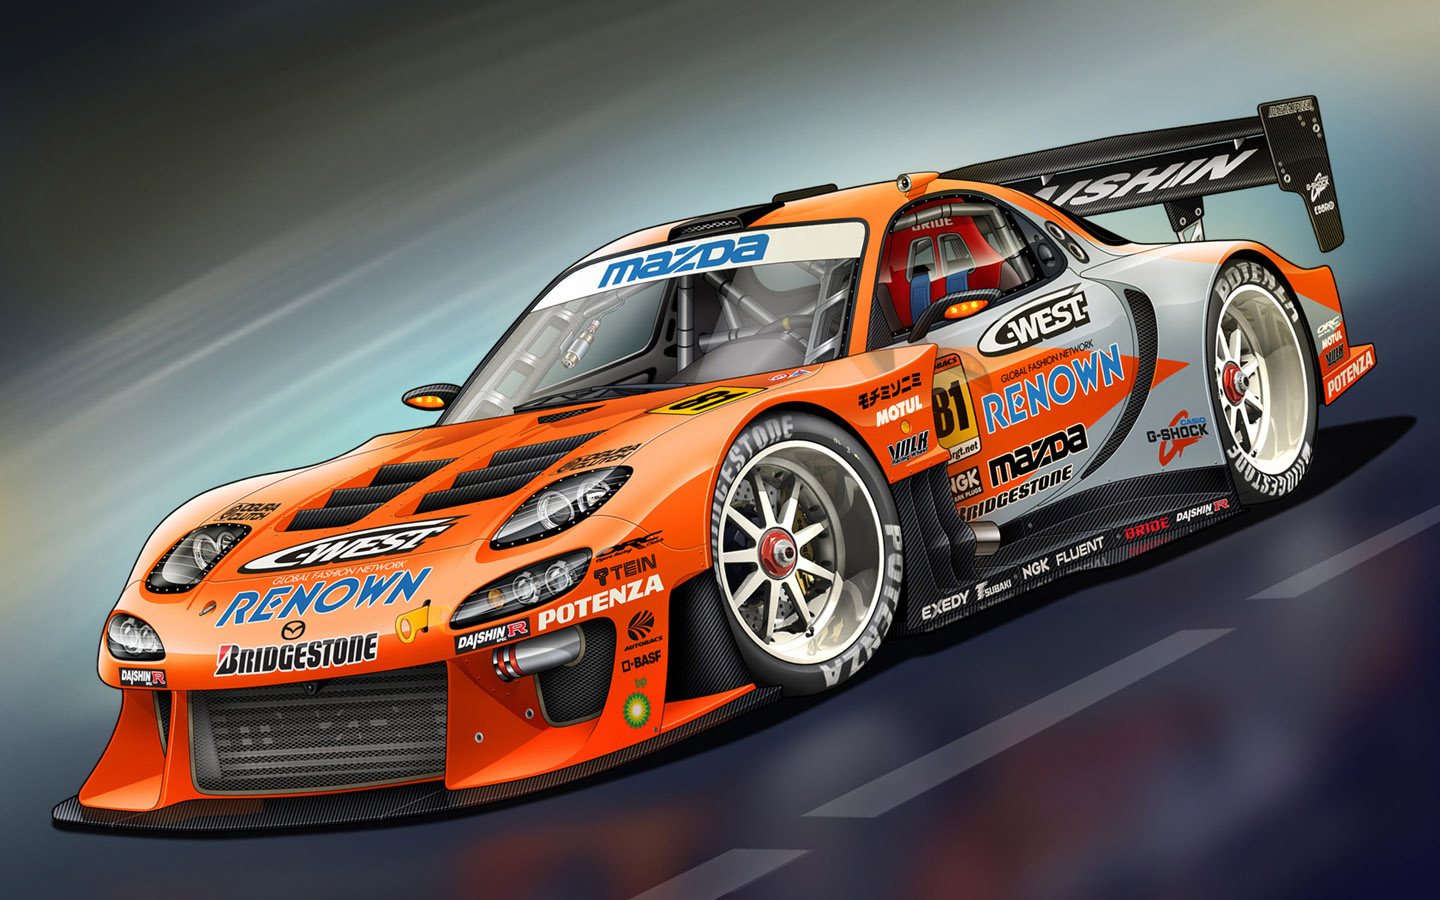 Super Race Car - Digital Car Design 1440*900 NO.16 Wallpaper